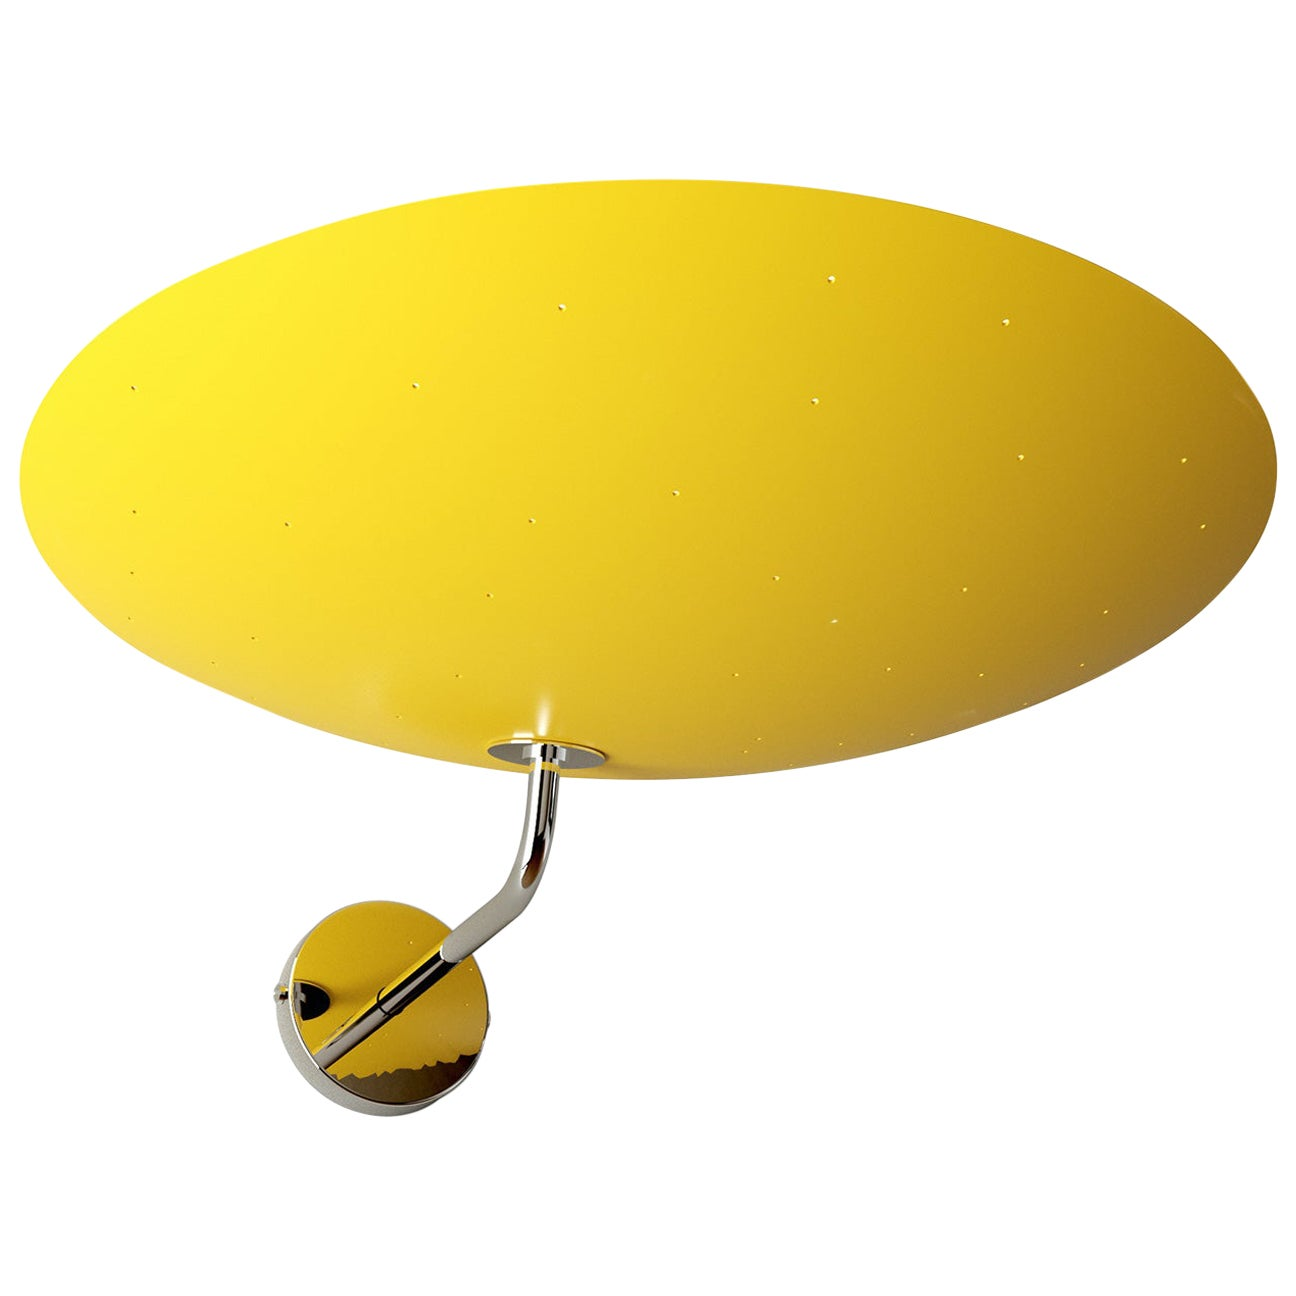 Pierre Disderot Model #2059 Large Perforated Wall Lamp in Yellow & Chrome